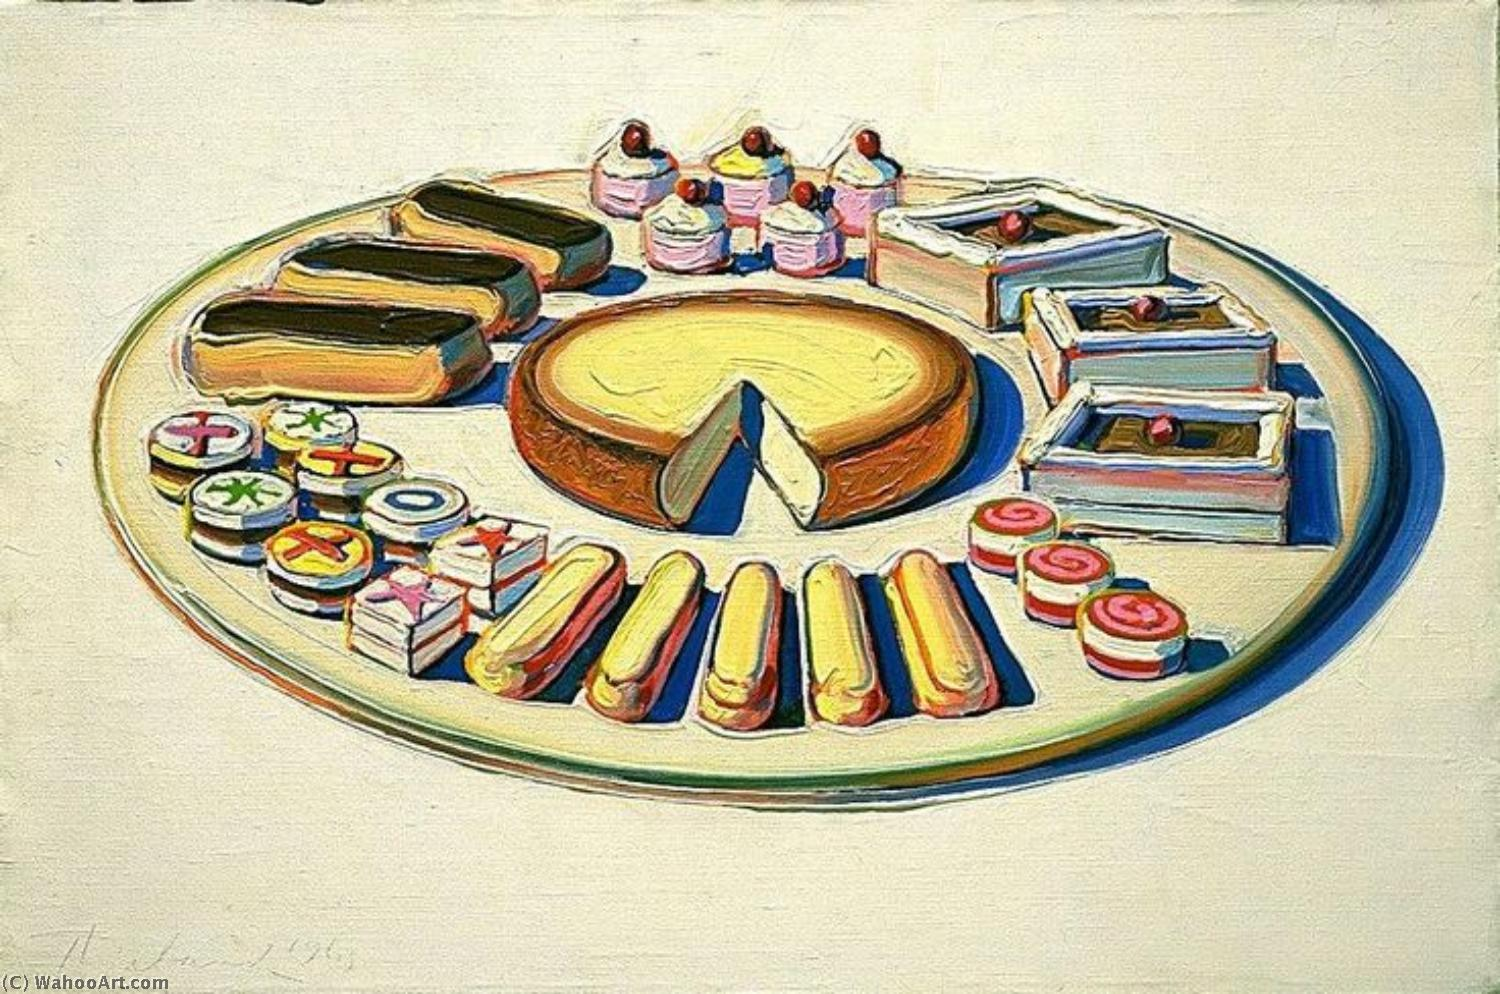 | pop art de Wayne Thiebaud | Most-Famous-Paintings.com